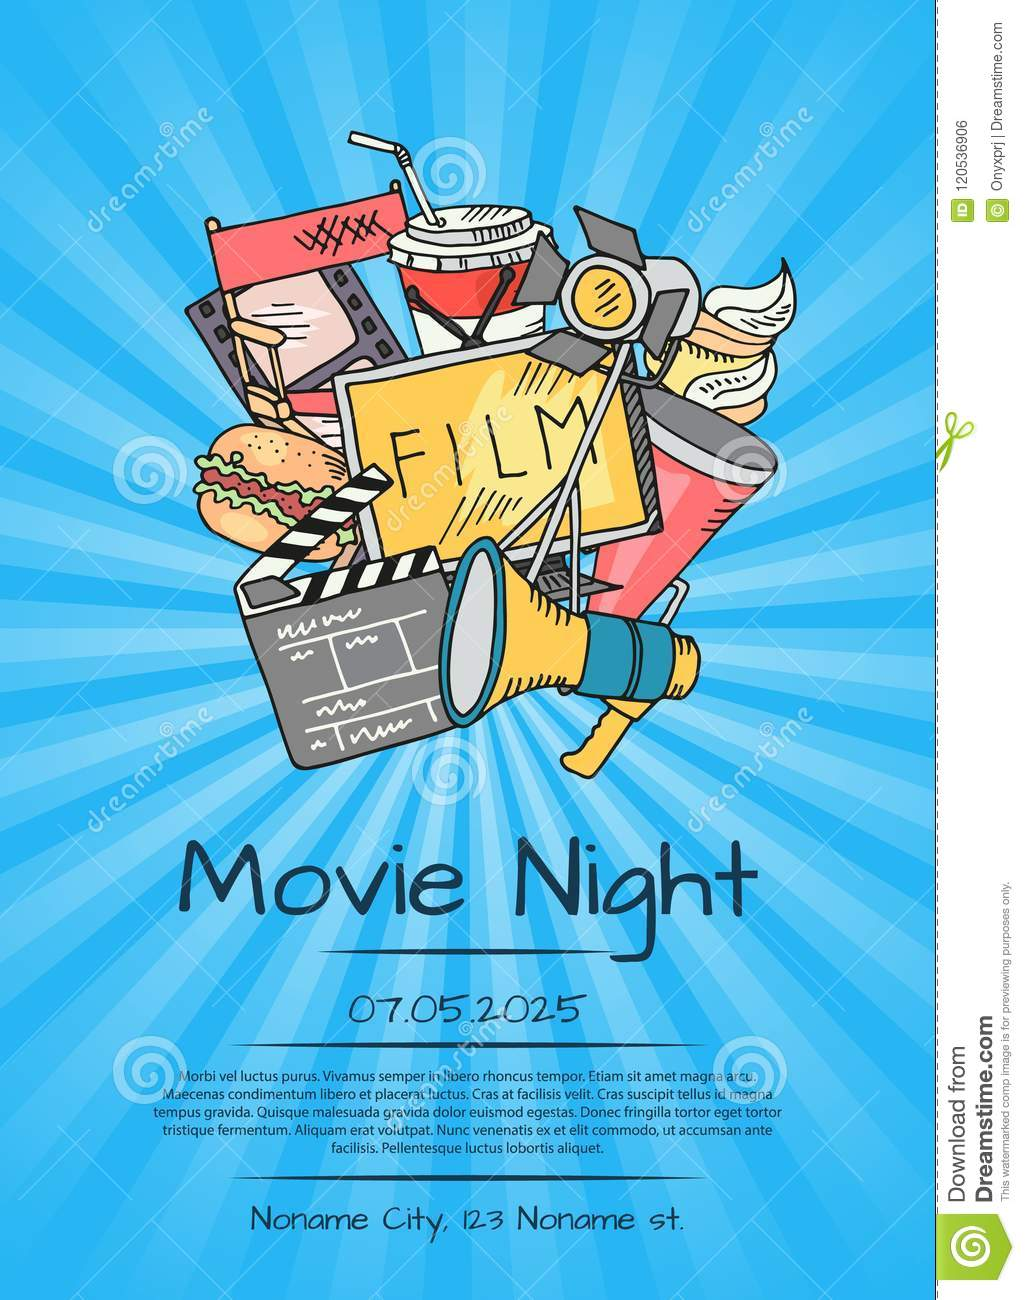 Vector cinema icons poster for movie night or festival